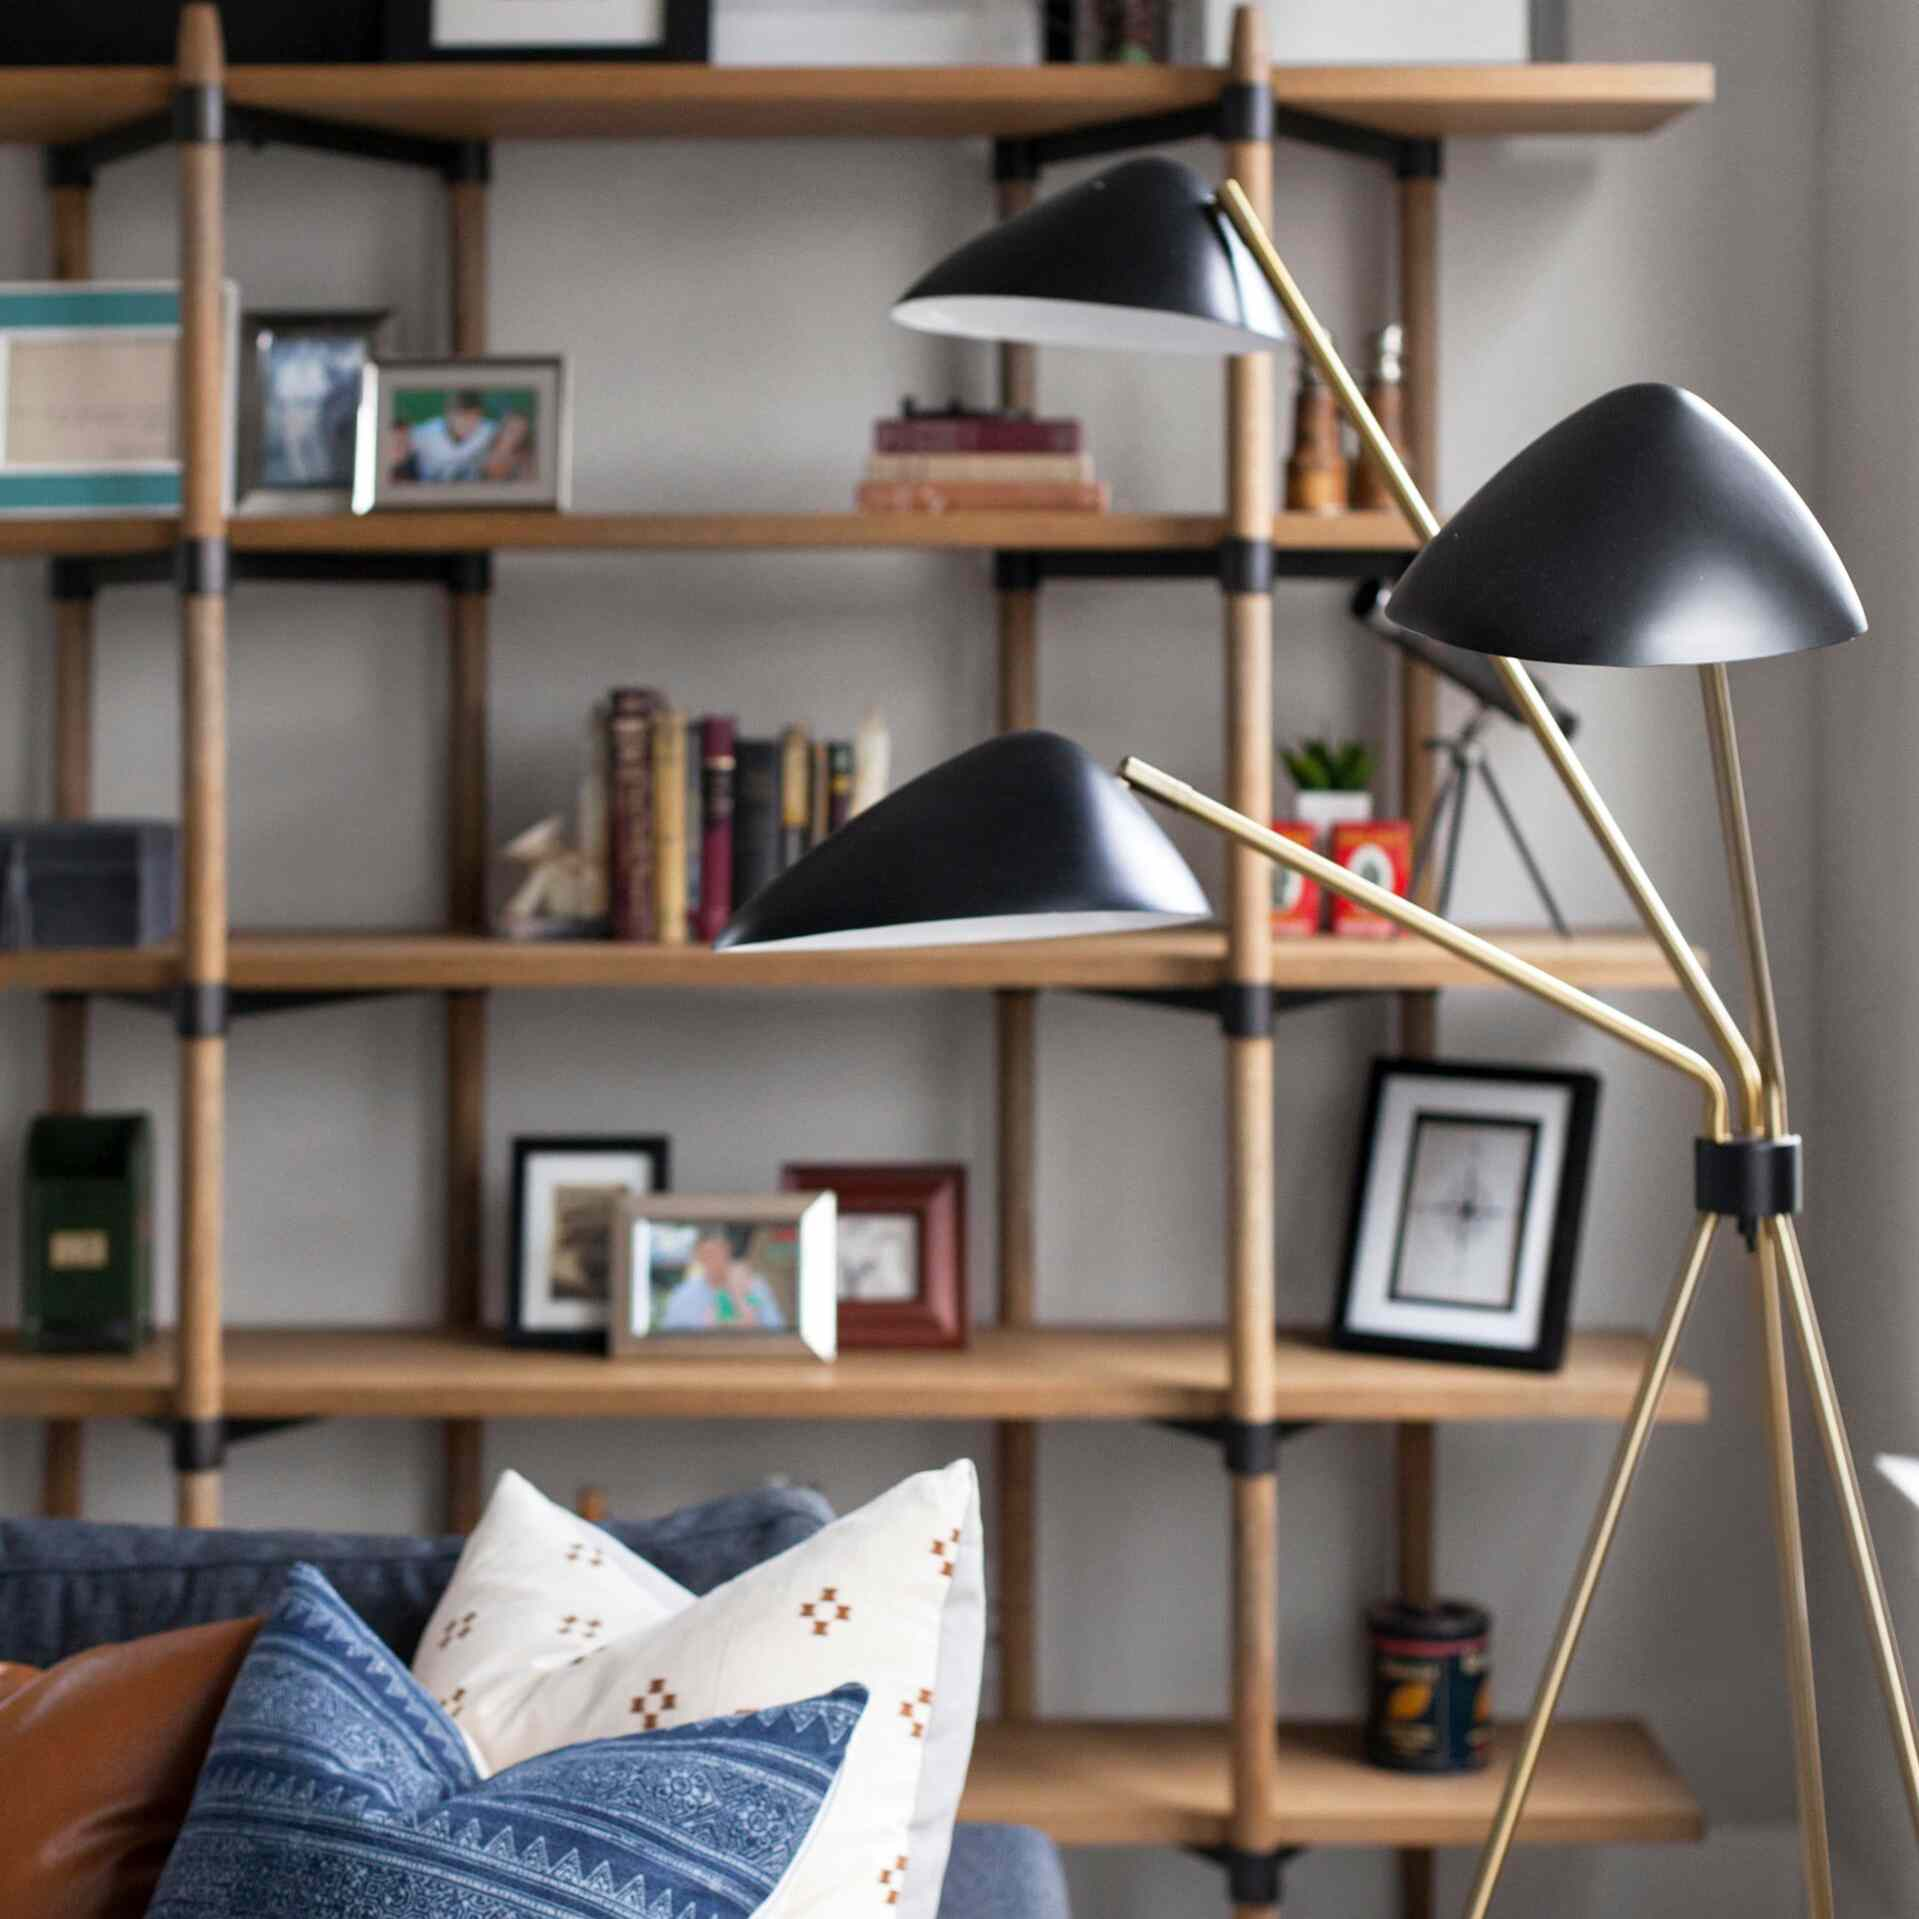 Living room with vertical styled bookshelf and Mid-Century Modern lamp